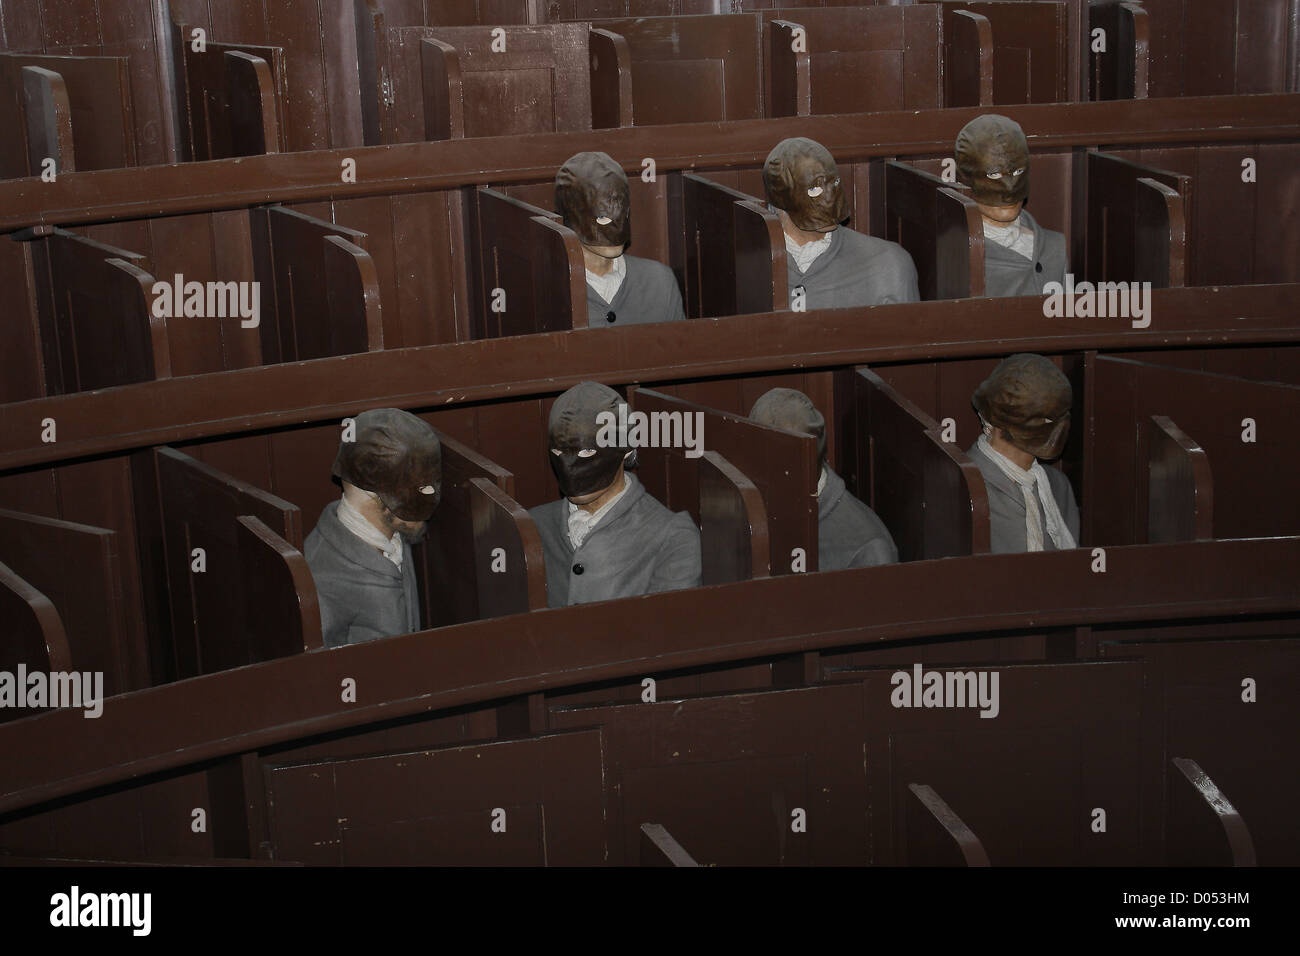 dummies in Lincoln Castle prison, Lincoln, Lincolnshire, England, UK - Stock Image